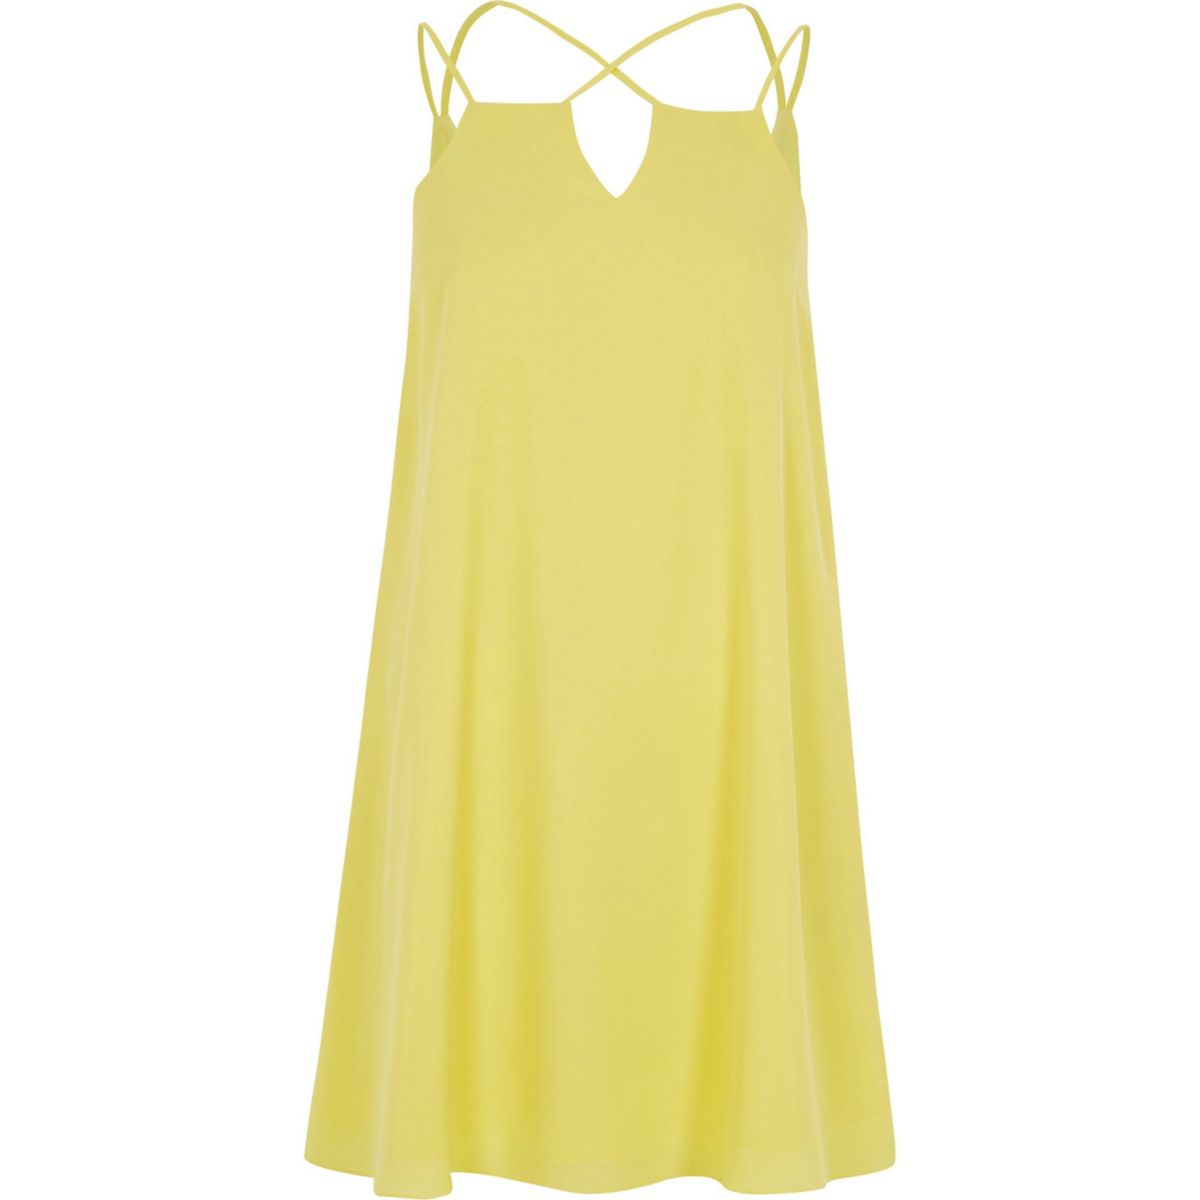 Yellow cross strap slip dress